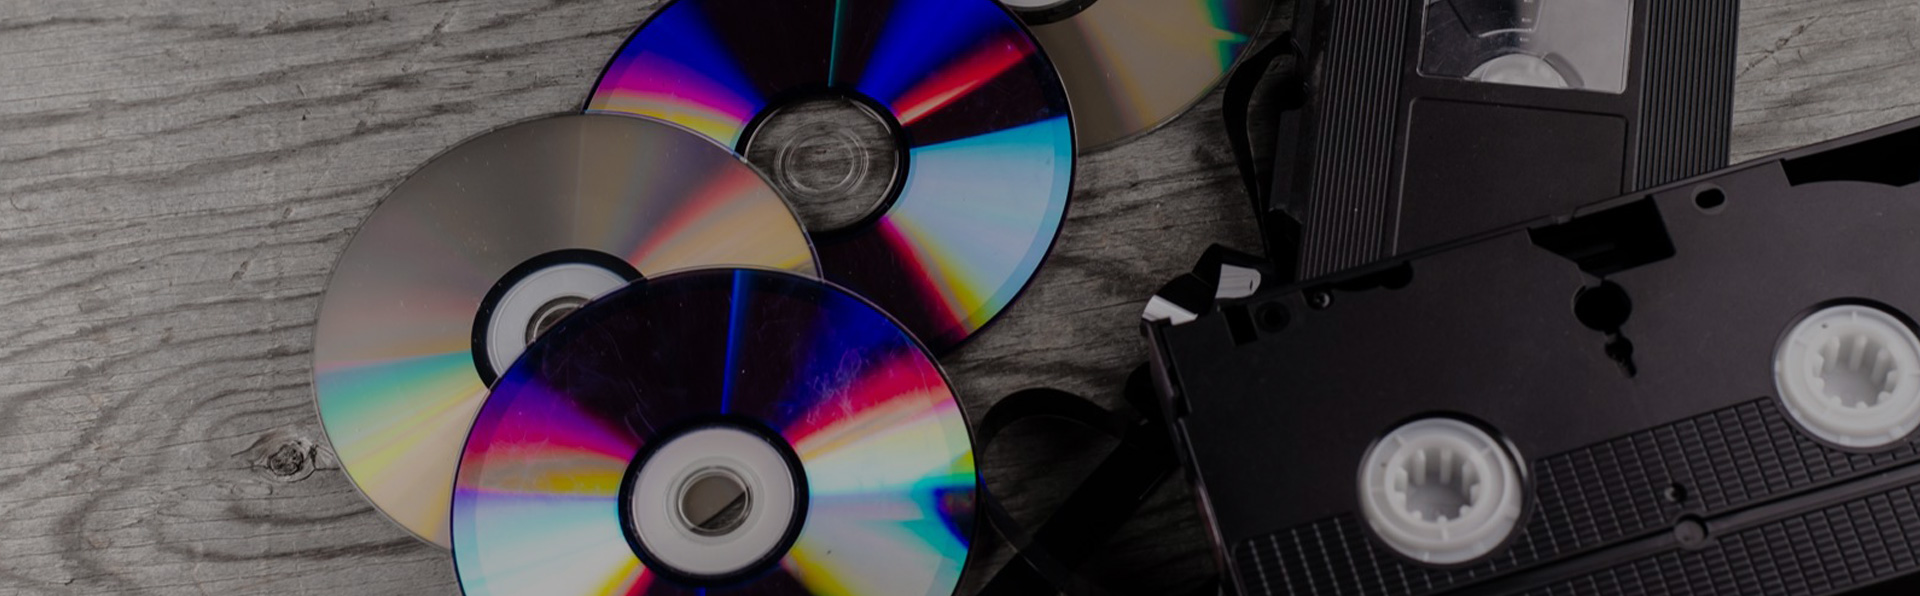 Quality video transfer services of VHS to DVD, located in Buffalo, NY and Tampa, FL